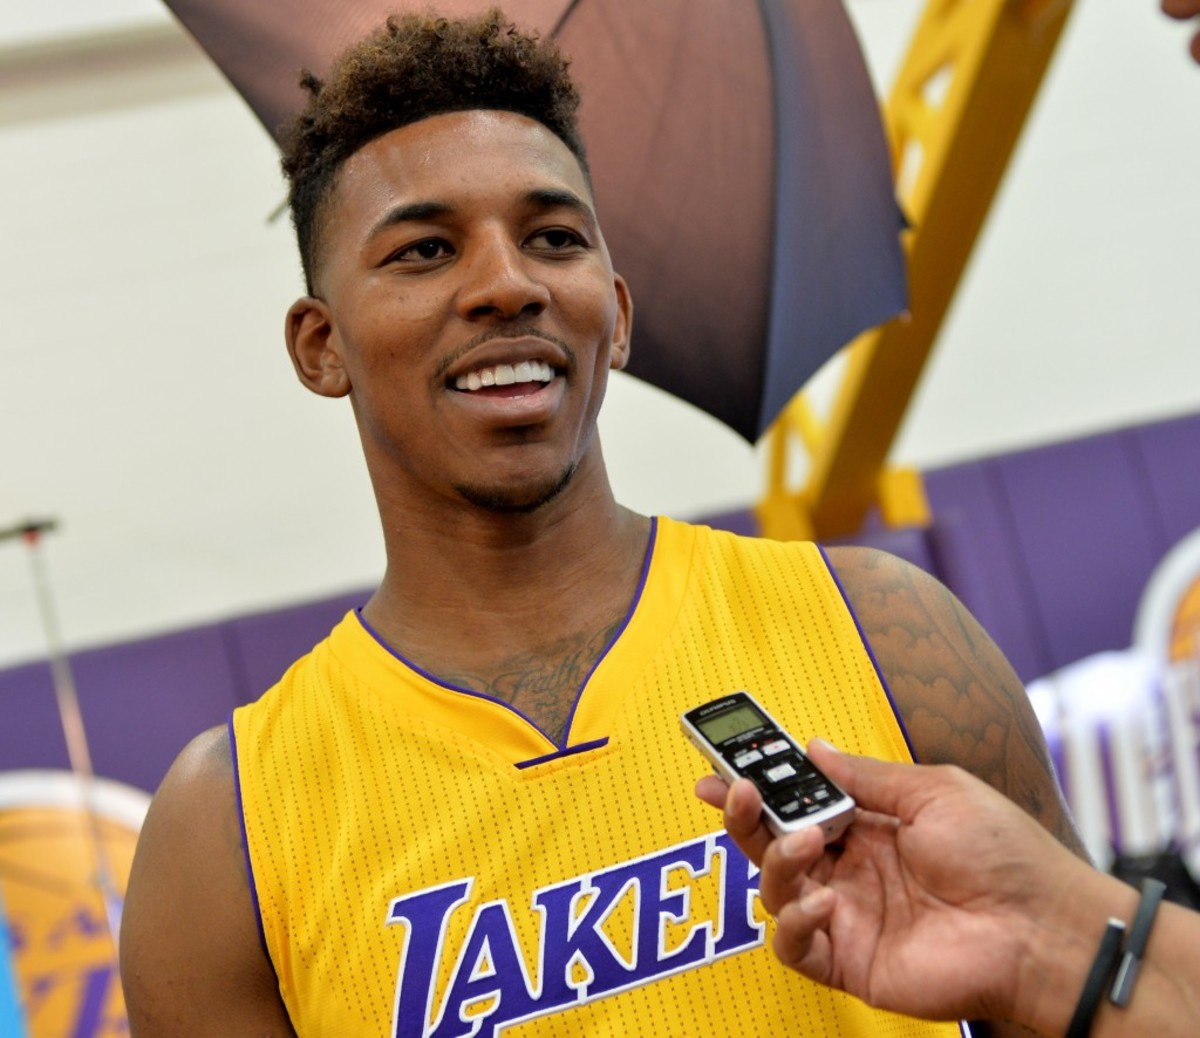 Nick Young is an NBA athlete who currently plays as a shooting guard for the Los Angeles Lakers He has gained traction for his style of shooting over passing as well